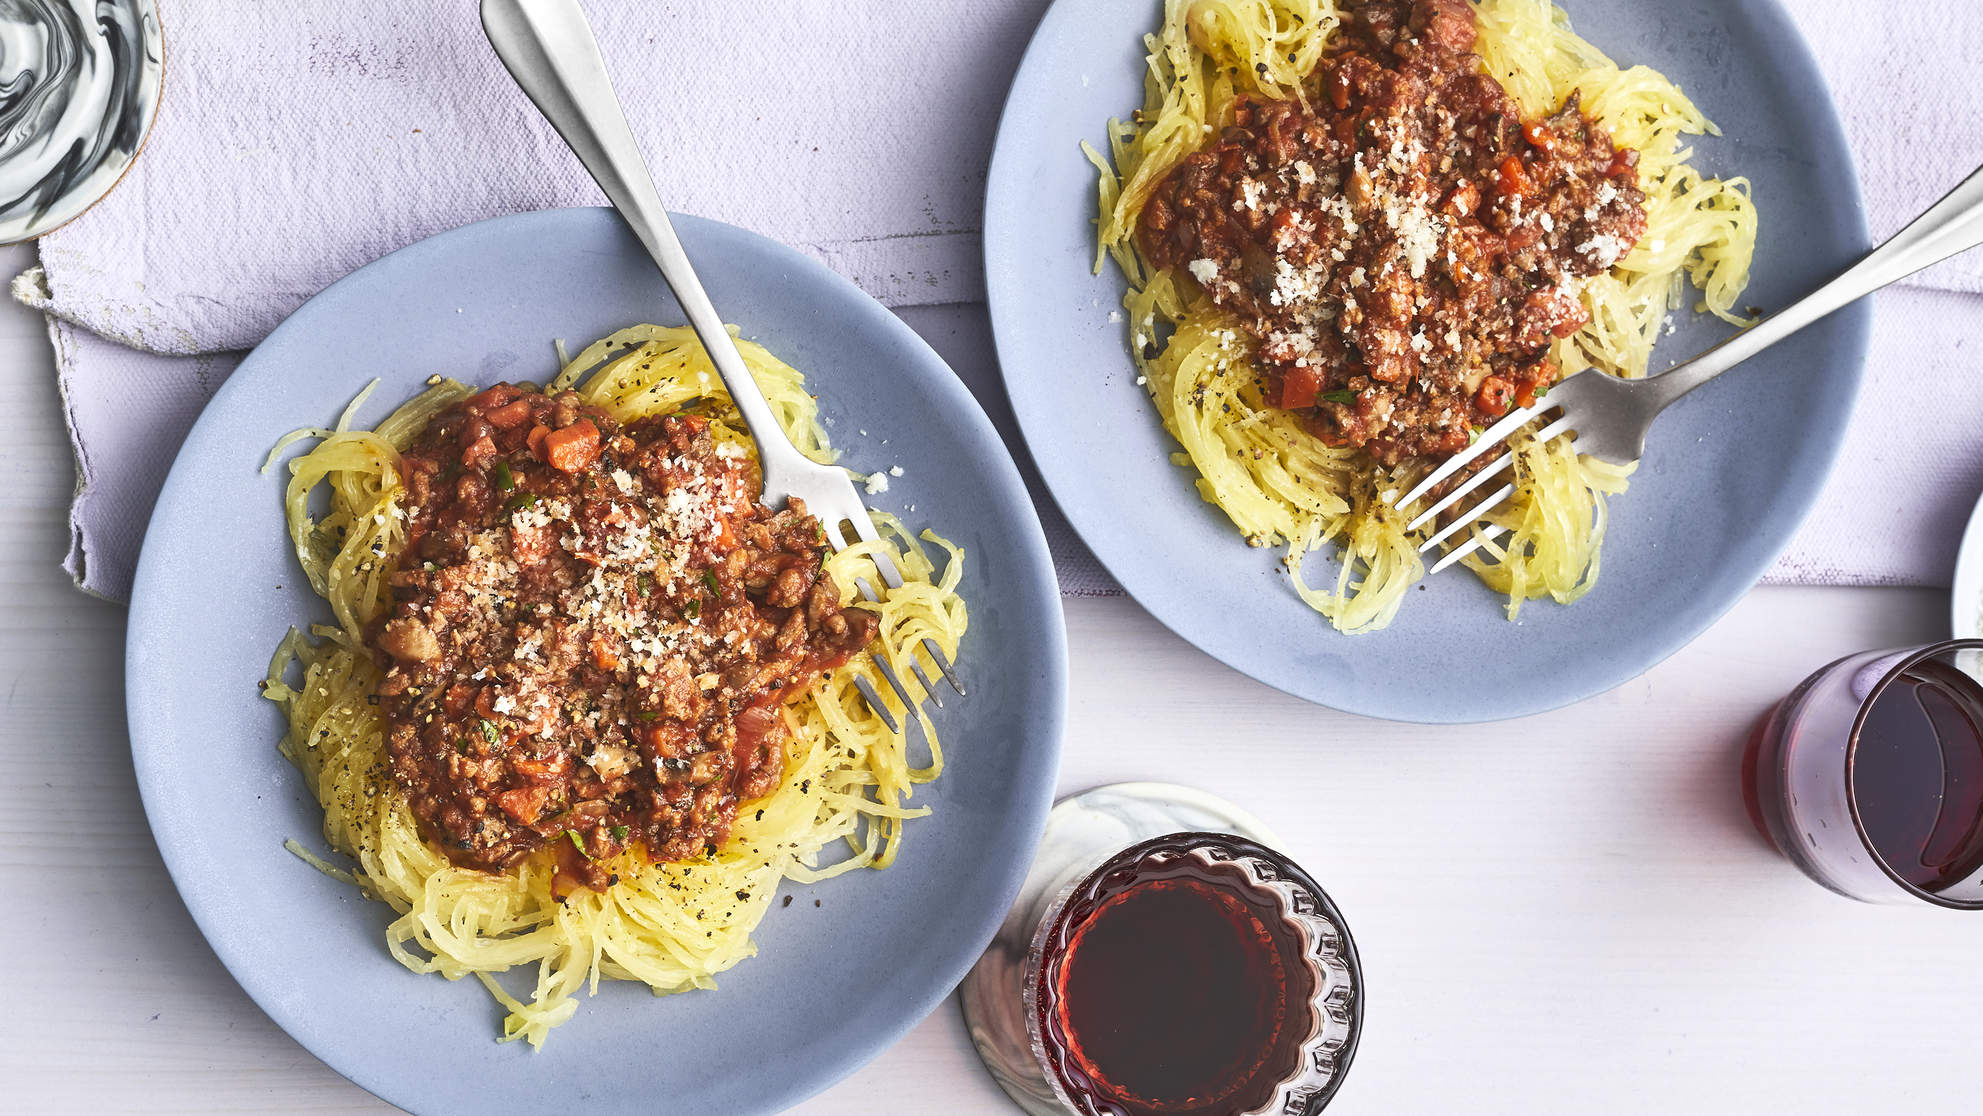 Turkey-Vegetable Bolognese With Spaghetti Squash